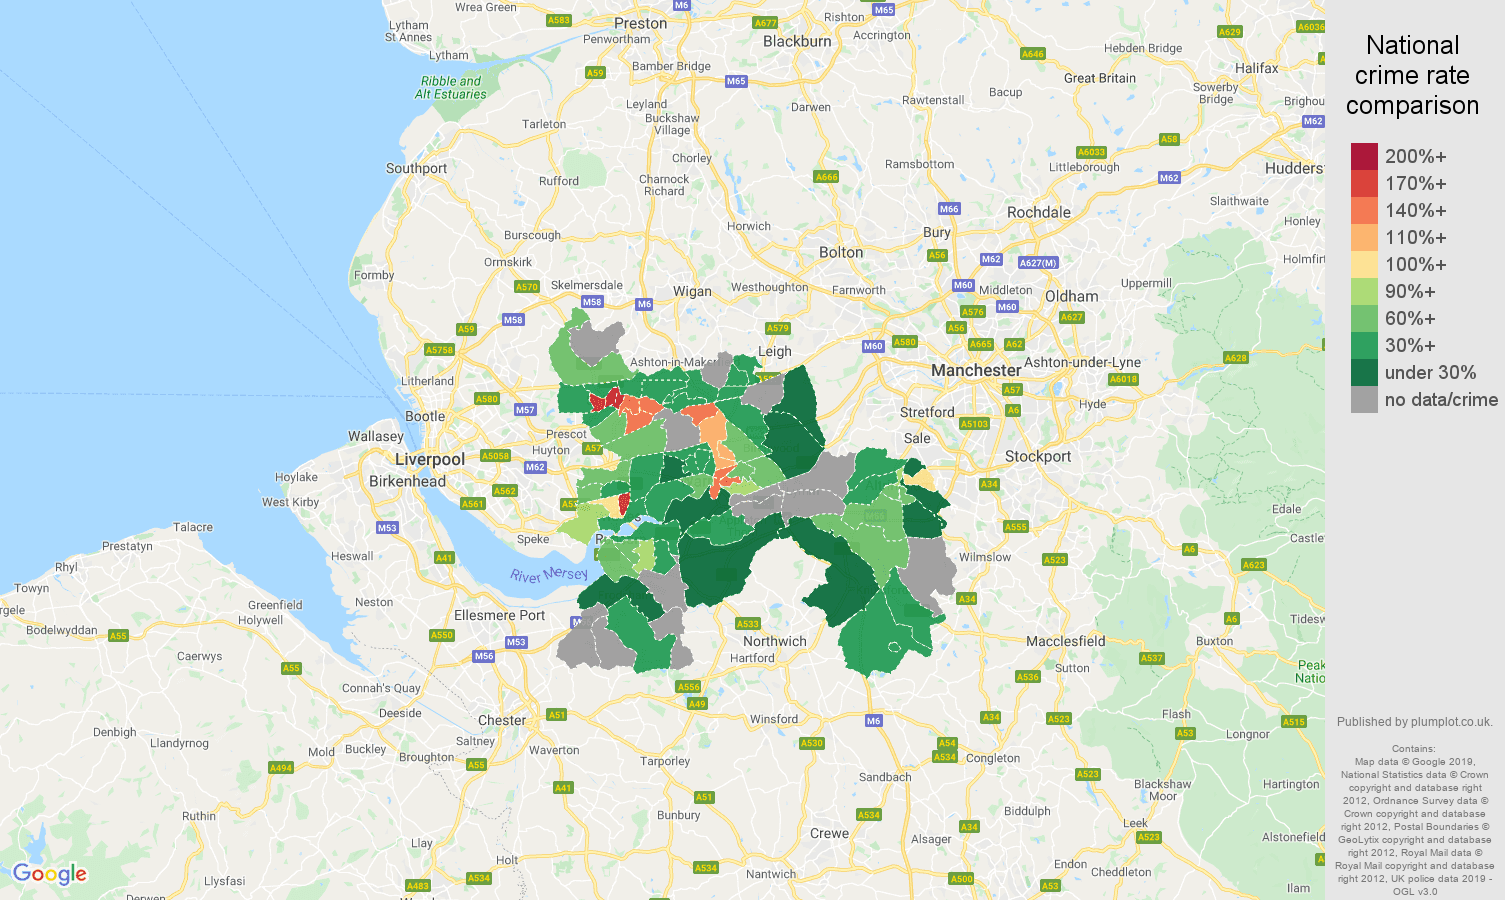 Warrington possession of weapons crime rate comparison map